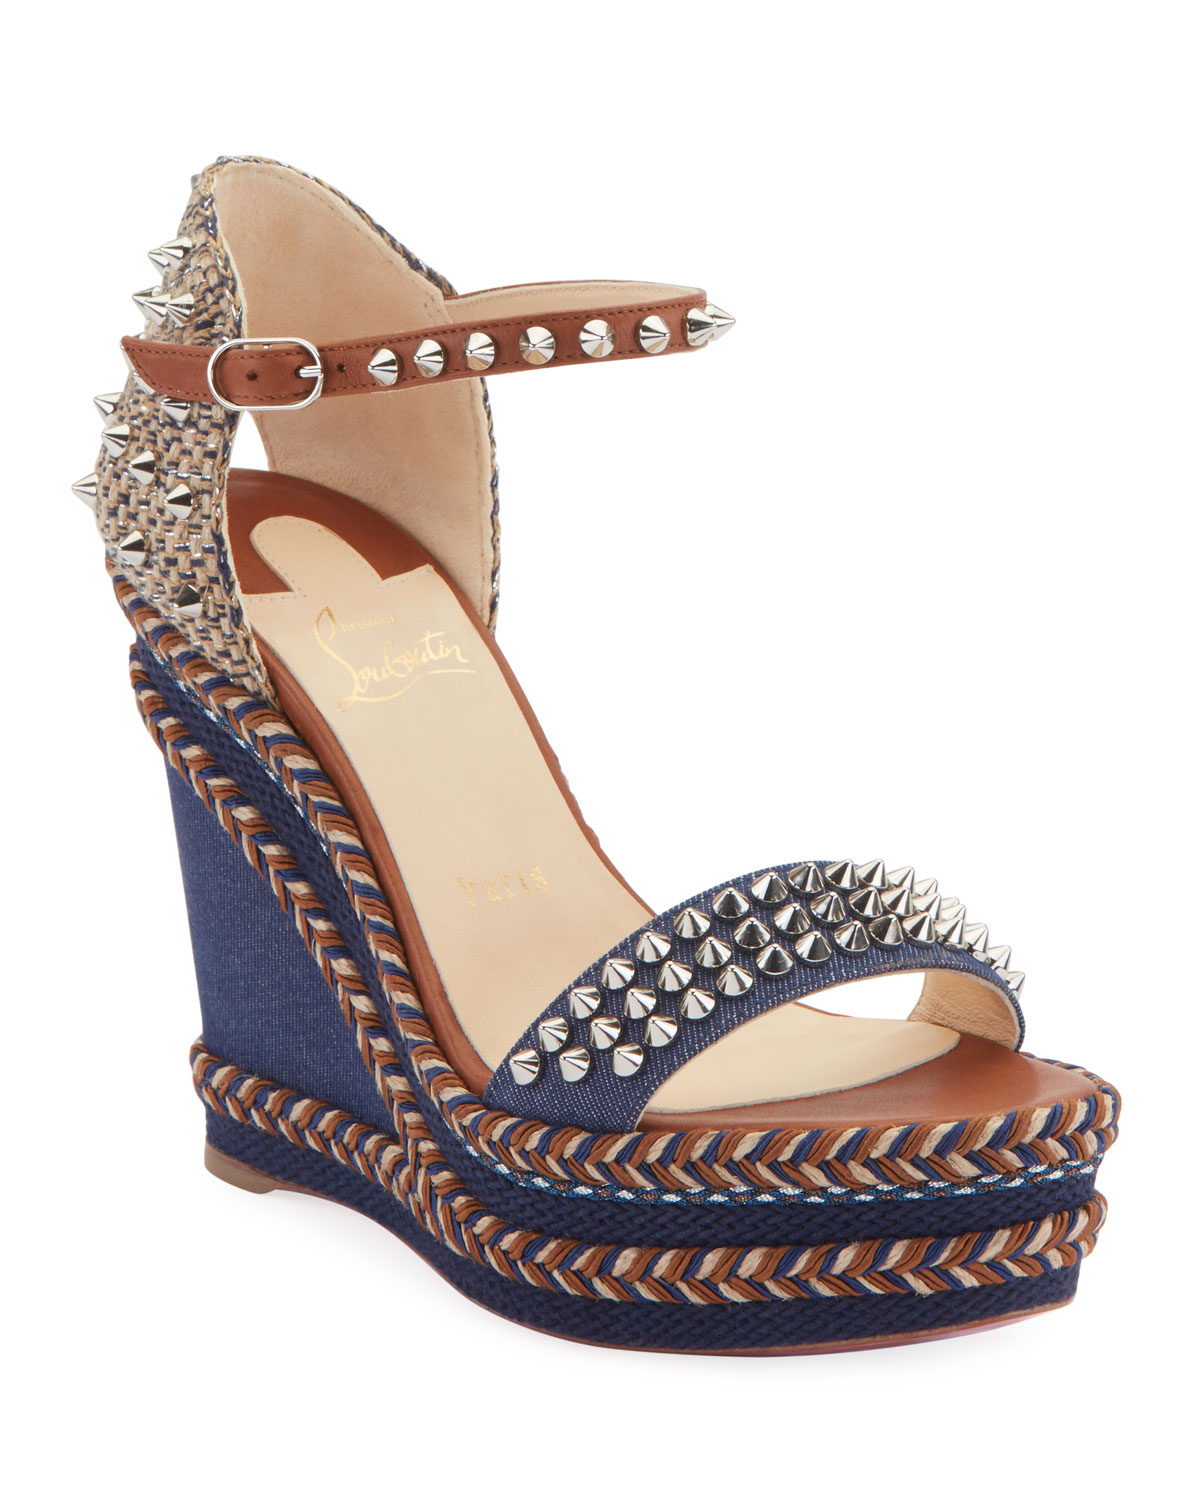 cb709ff490 Christian Louboutin Madmonica 120mm Spiked Denim Wedge Red Sole Sandals